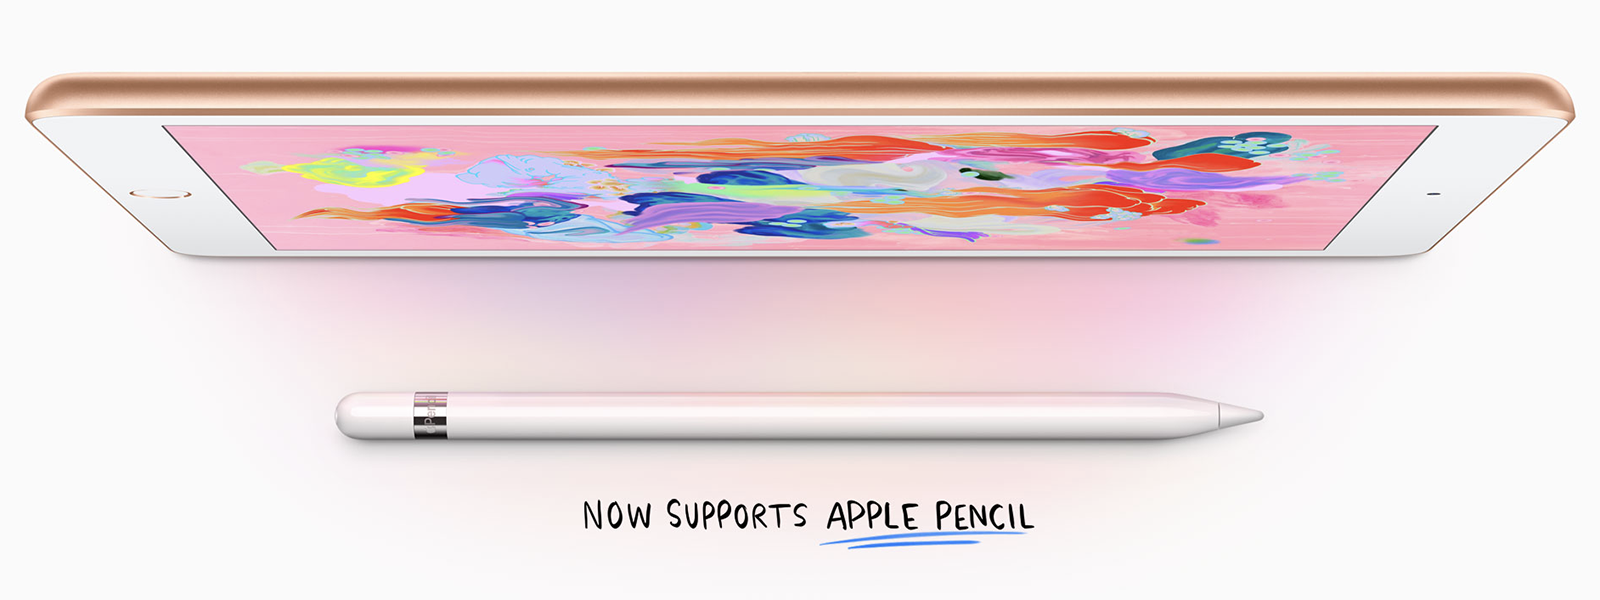 iPad 2018 & Apple Pencil